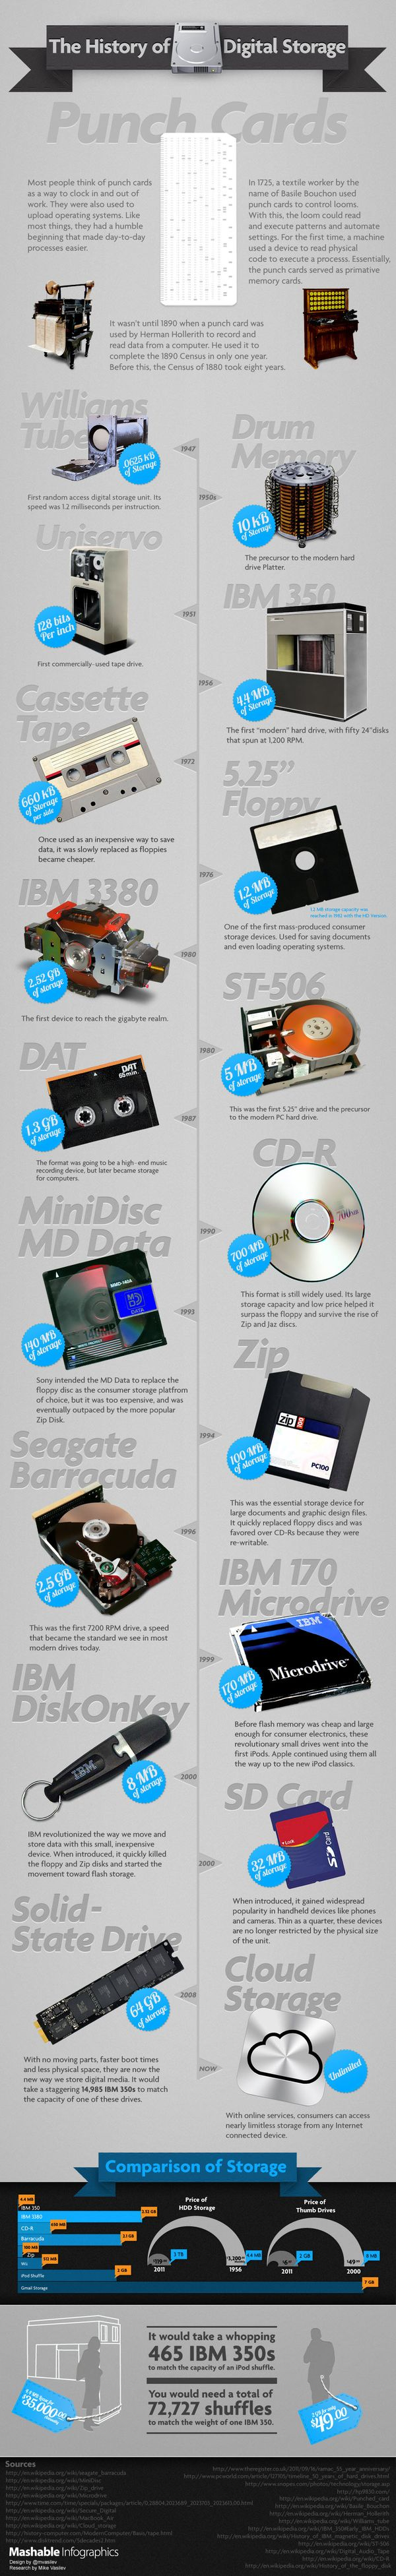 120108  history-of-digital-storage-infographic